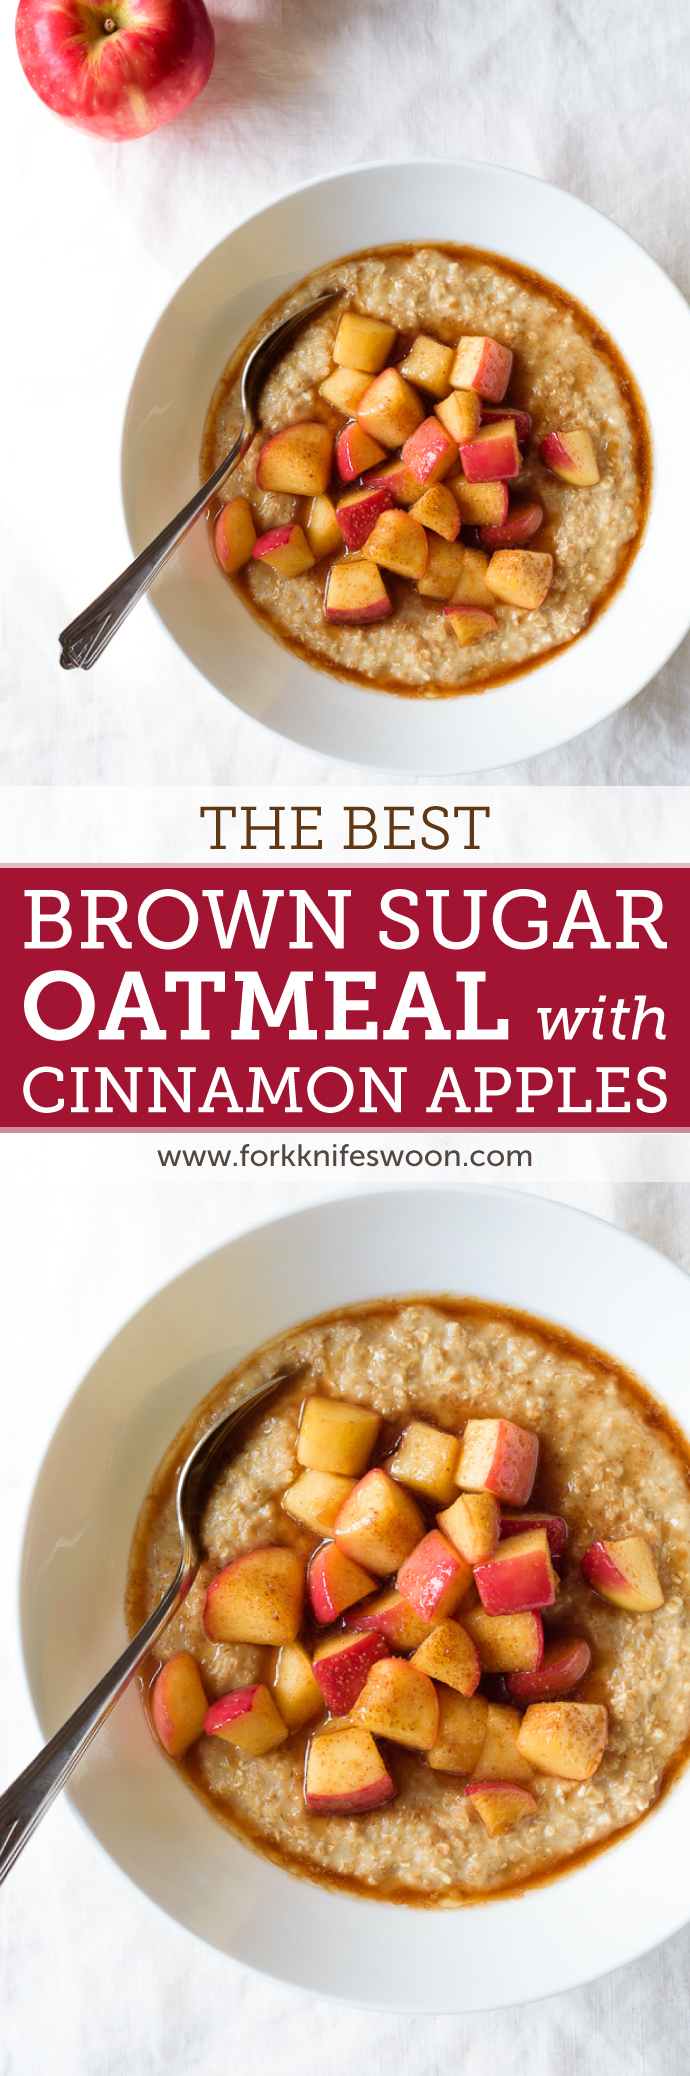 Best Homemade Brown Sugar Oatmeal with Maple Cinnamon Apples | via forkknifeswoon.com @forkknifeswoon